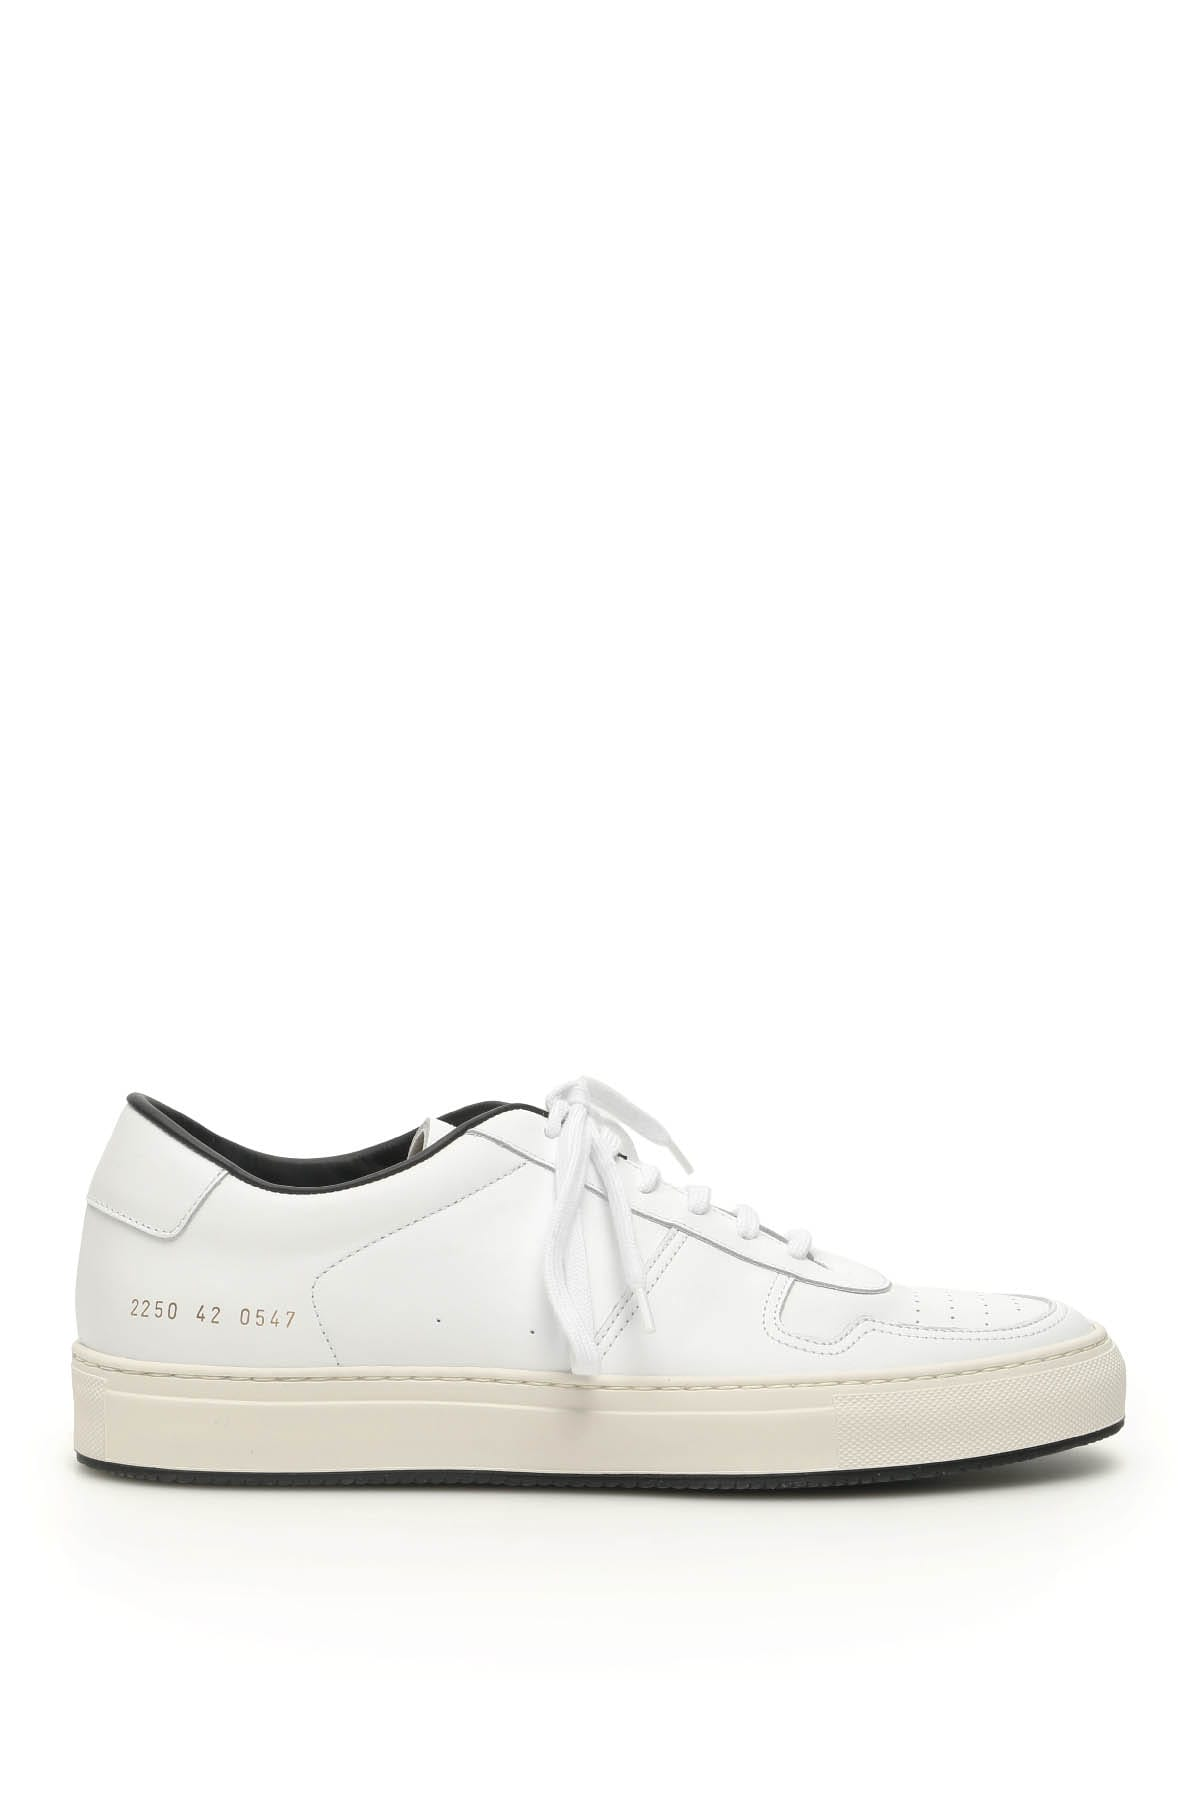 Common Projects Bball88 Sneakers